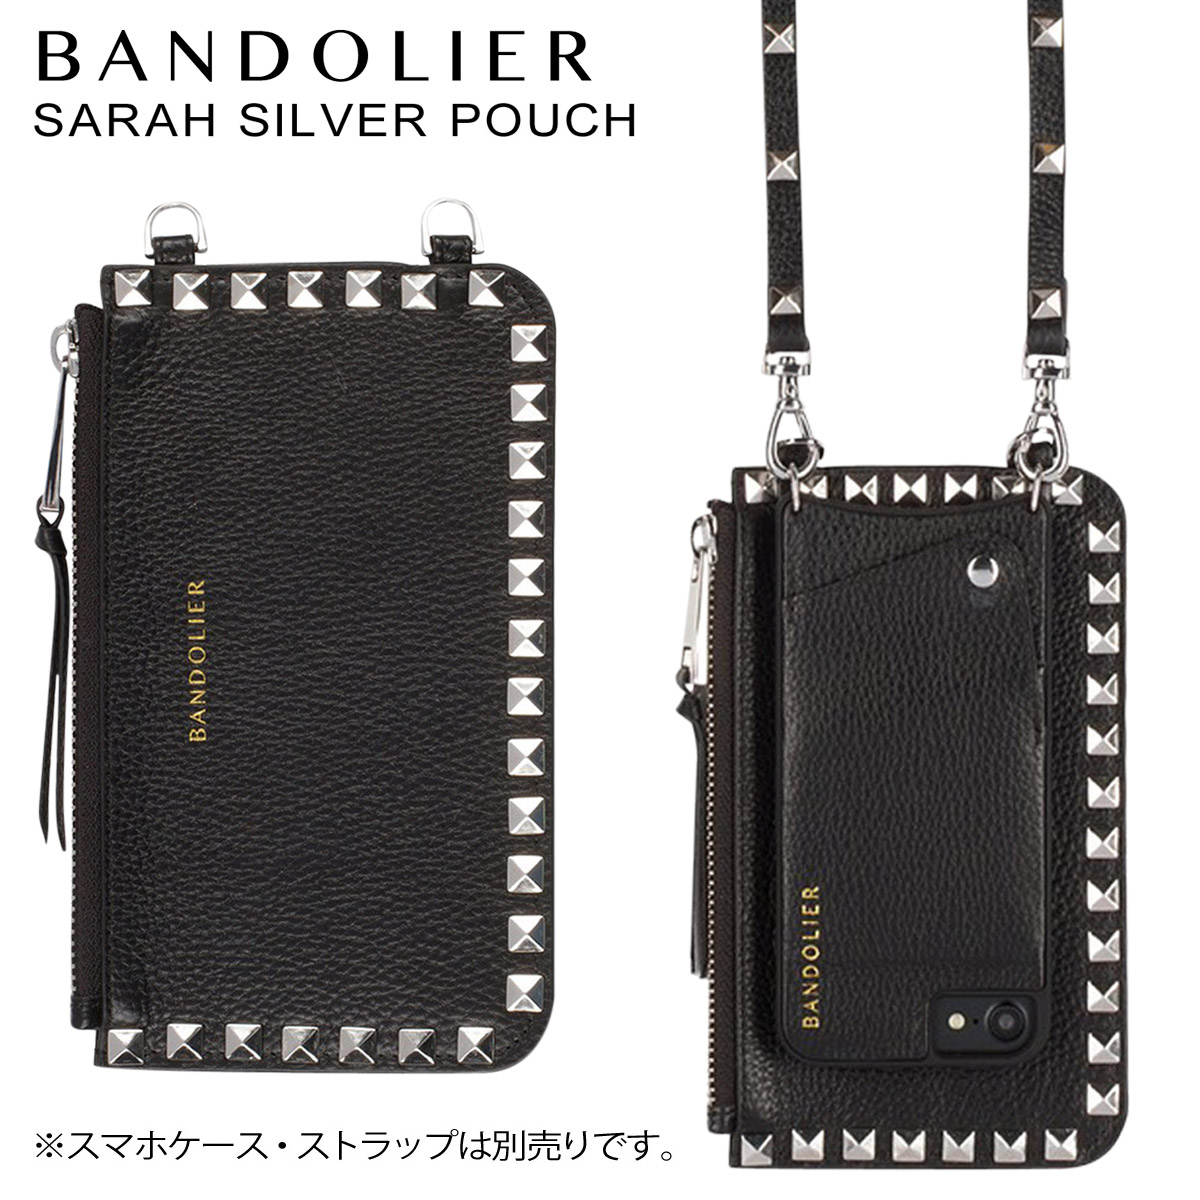 Messing Online Shop Bandolier Band Re Yeah Smartphone Porch Case Iphone7 7plus 6s Smartphone Eyephone Plus Leather Studs Men Gap Dis 9 5 Shinnyu Load